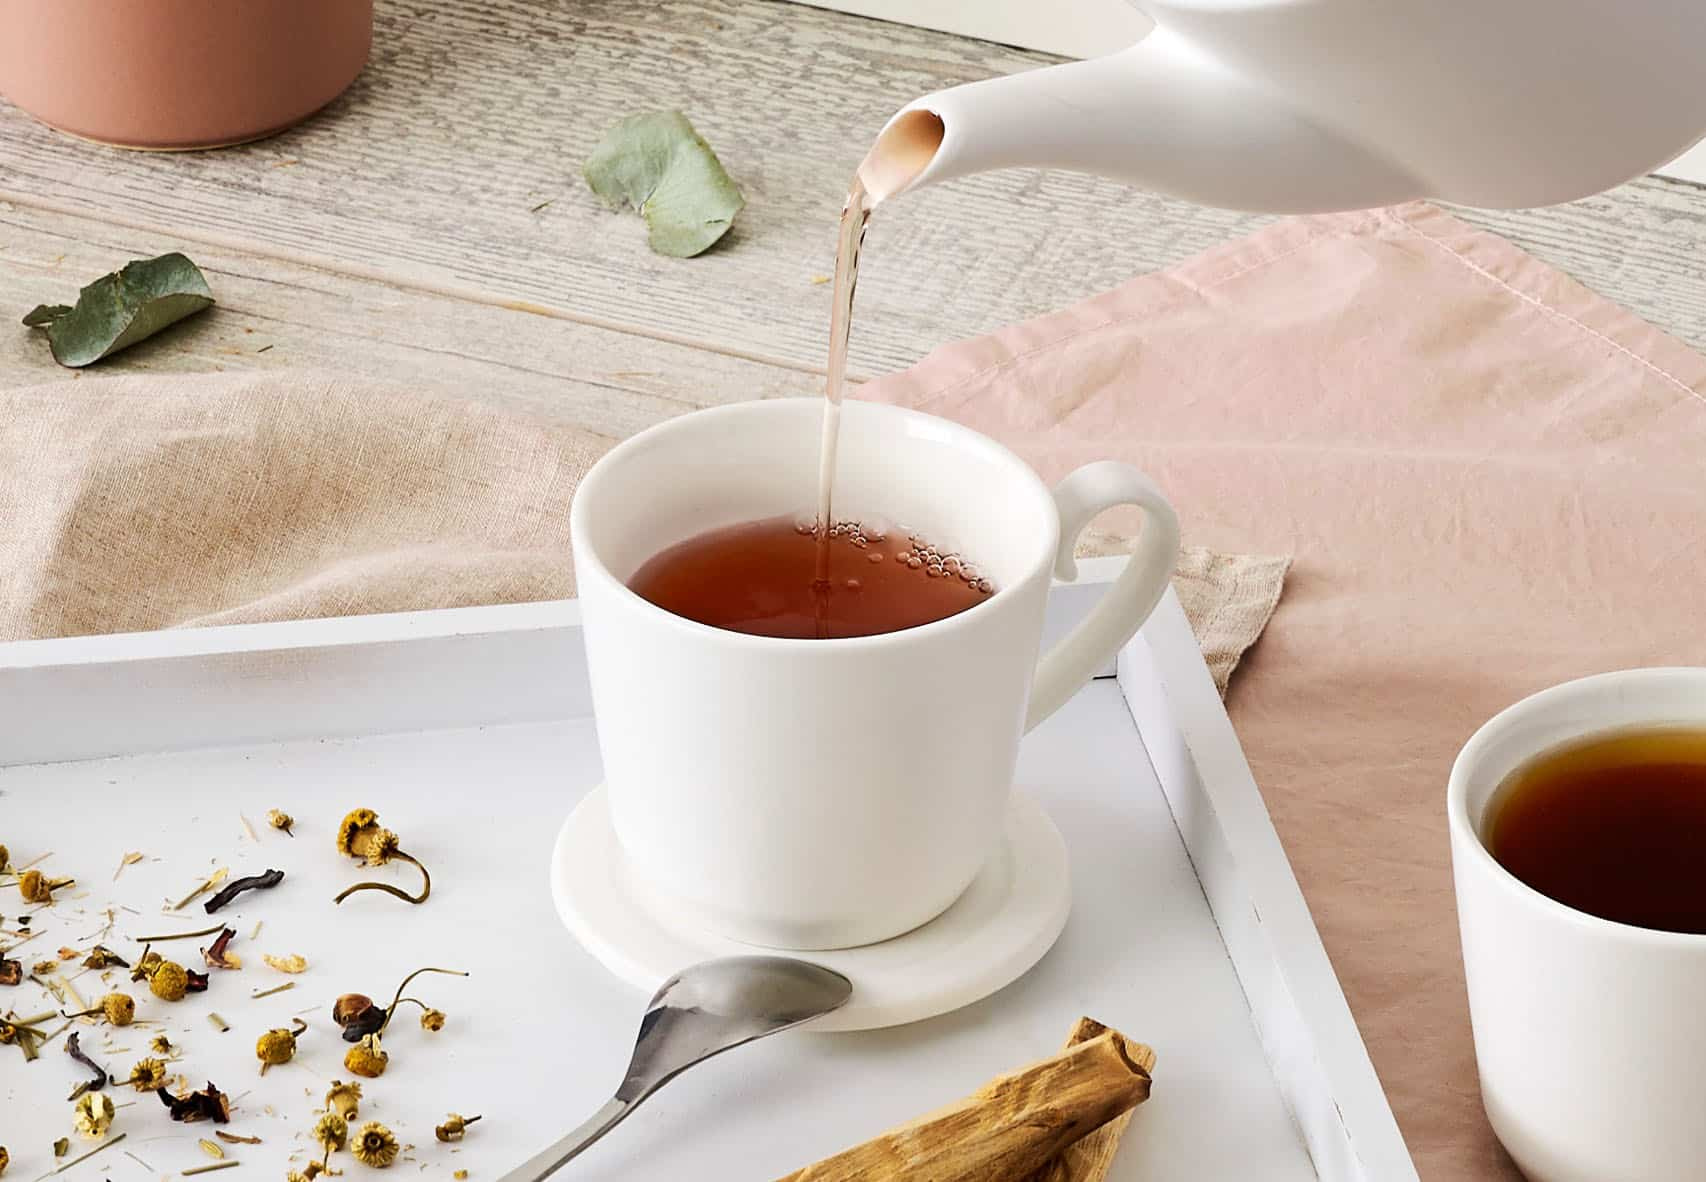 Tea poured in a white ceramic teacup placed on a tray and various neutral linens.